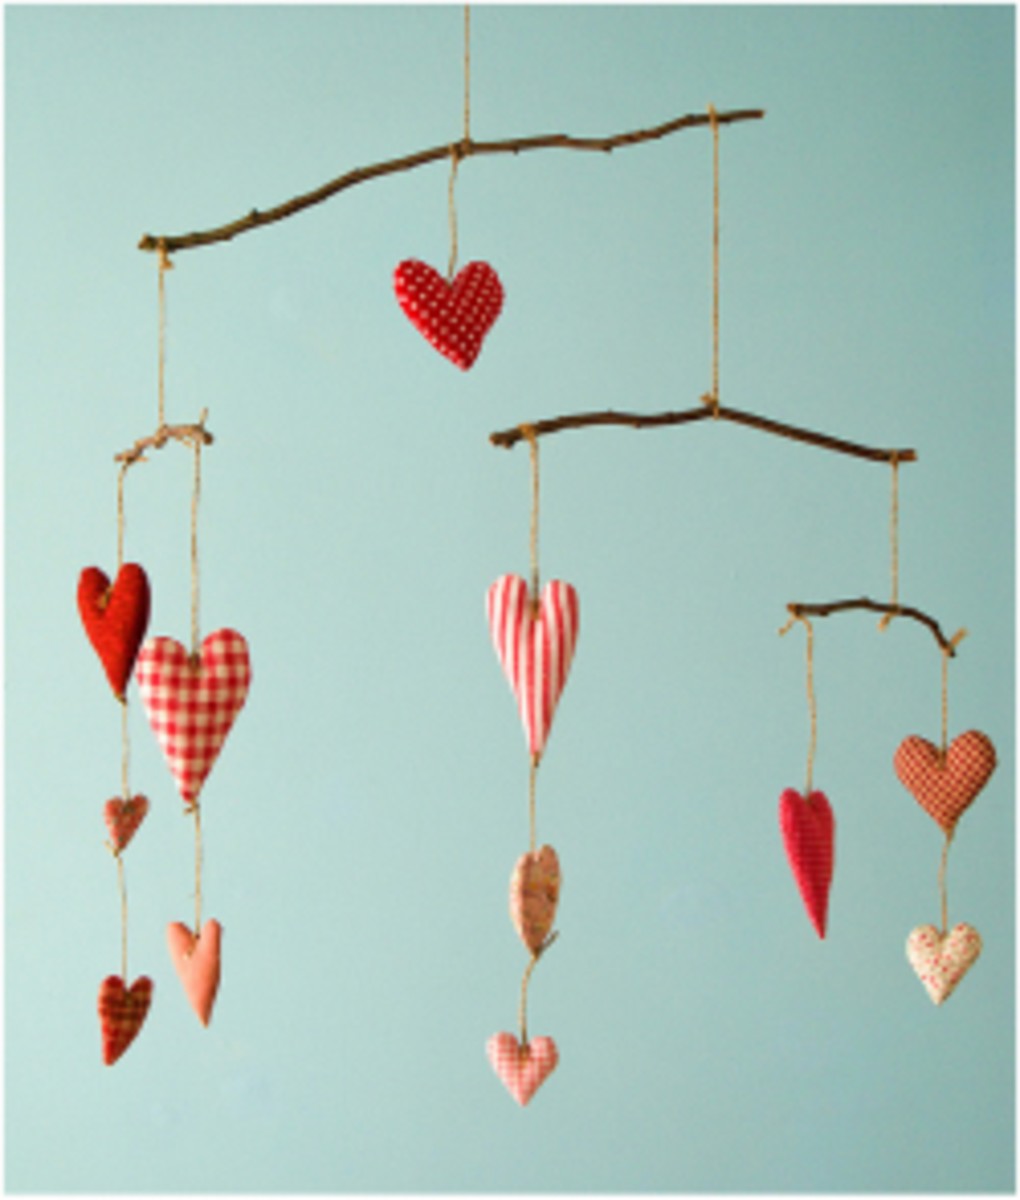 ★ Love-Themed Crafts For Valentine's Day, Romantic Dates & Home Decor | Craft Tutorials & Gifts ★